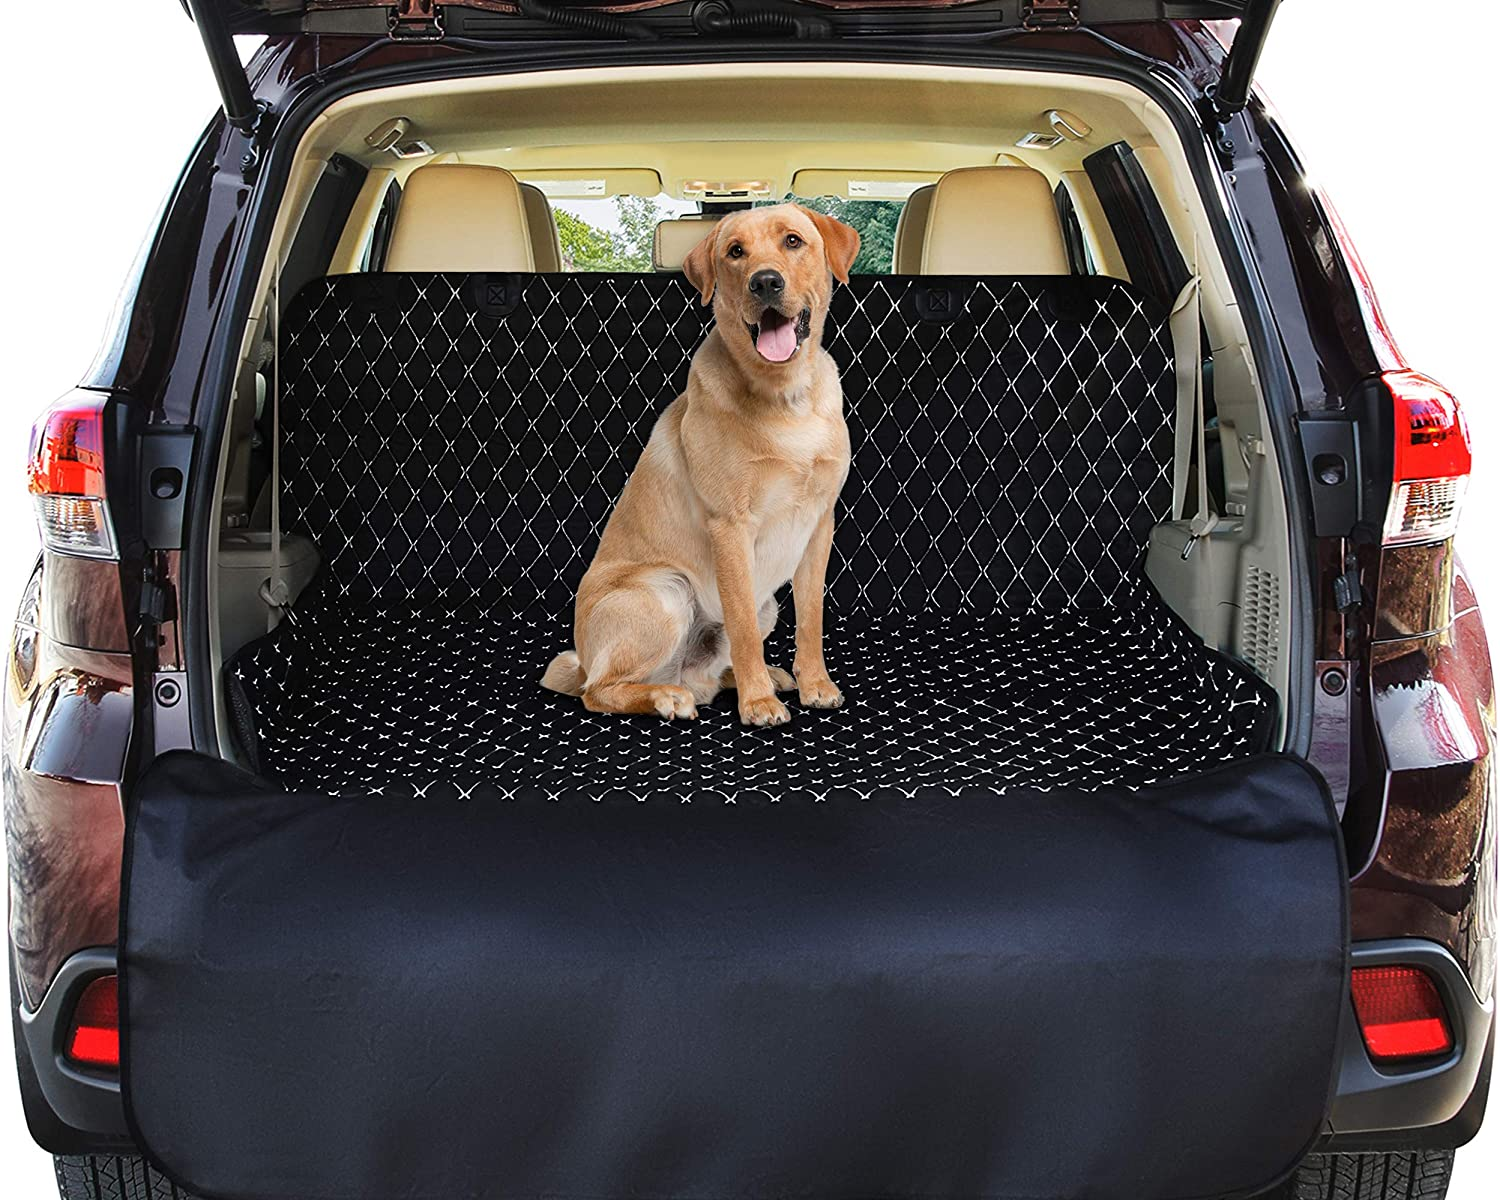 Pawple Pets SUV Cargo Liner Cover for SUVs and Cars, Waterproof Material, Non Slip Backing, Extra Bumper Flap Protector, Large Size – Universal Fit